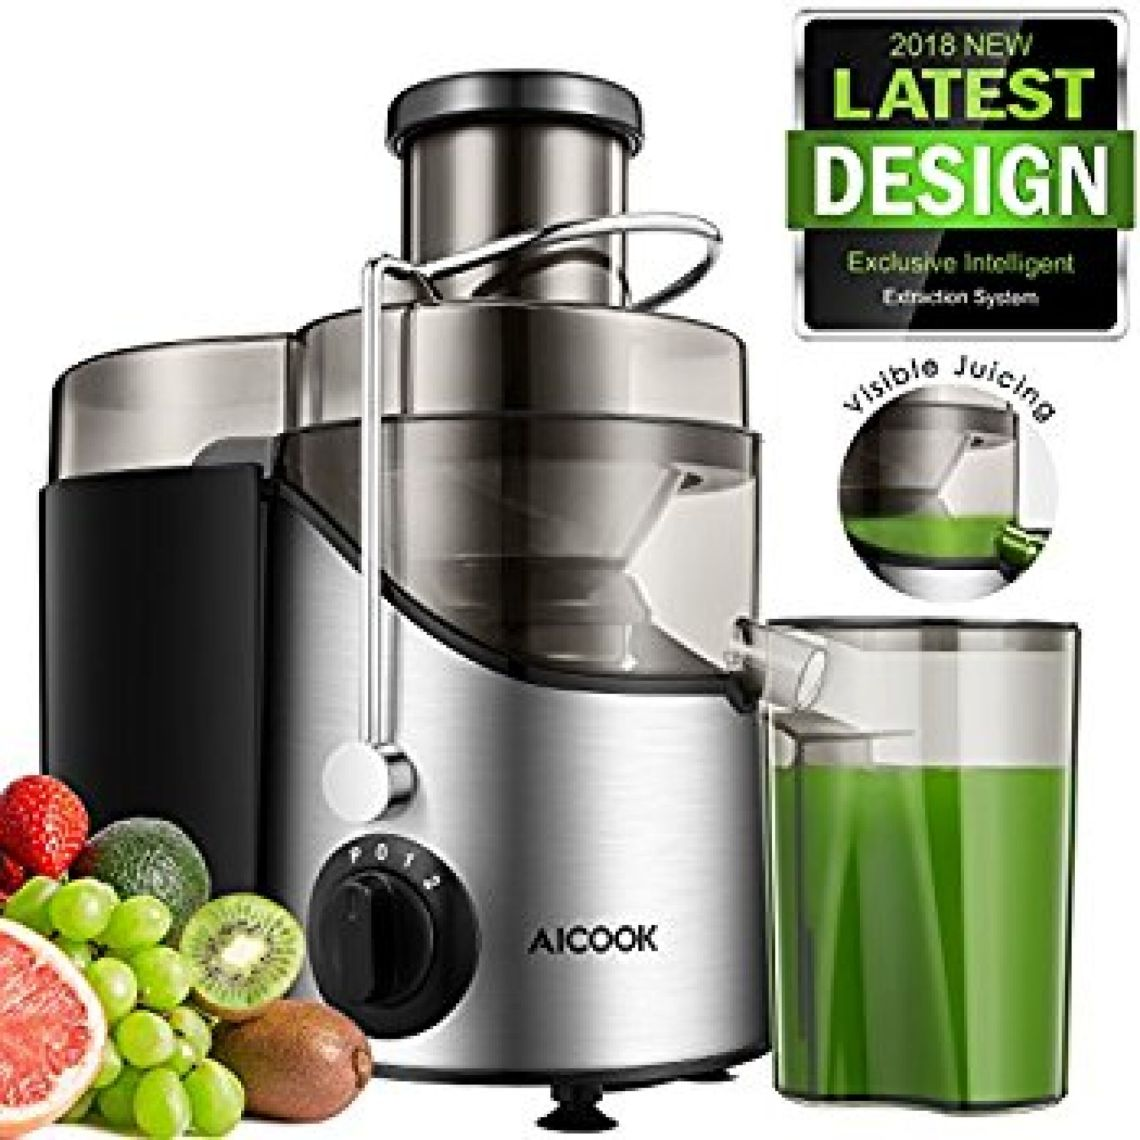 Amazon.com: Juicer Juice Extractor, Aicook 3'' Wide Mouth Stainless Steel Centrifugal Juicer, BPA-Free, Non-Slip Feet, Three Speed Juicer Machine for Fruits and Vegetable: Home & Kitchen